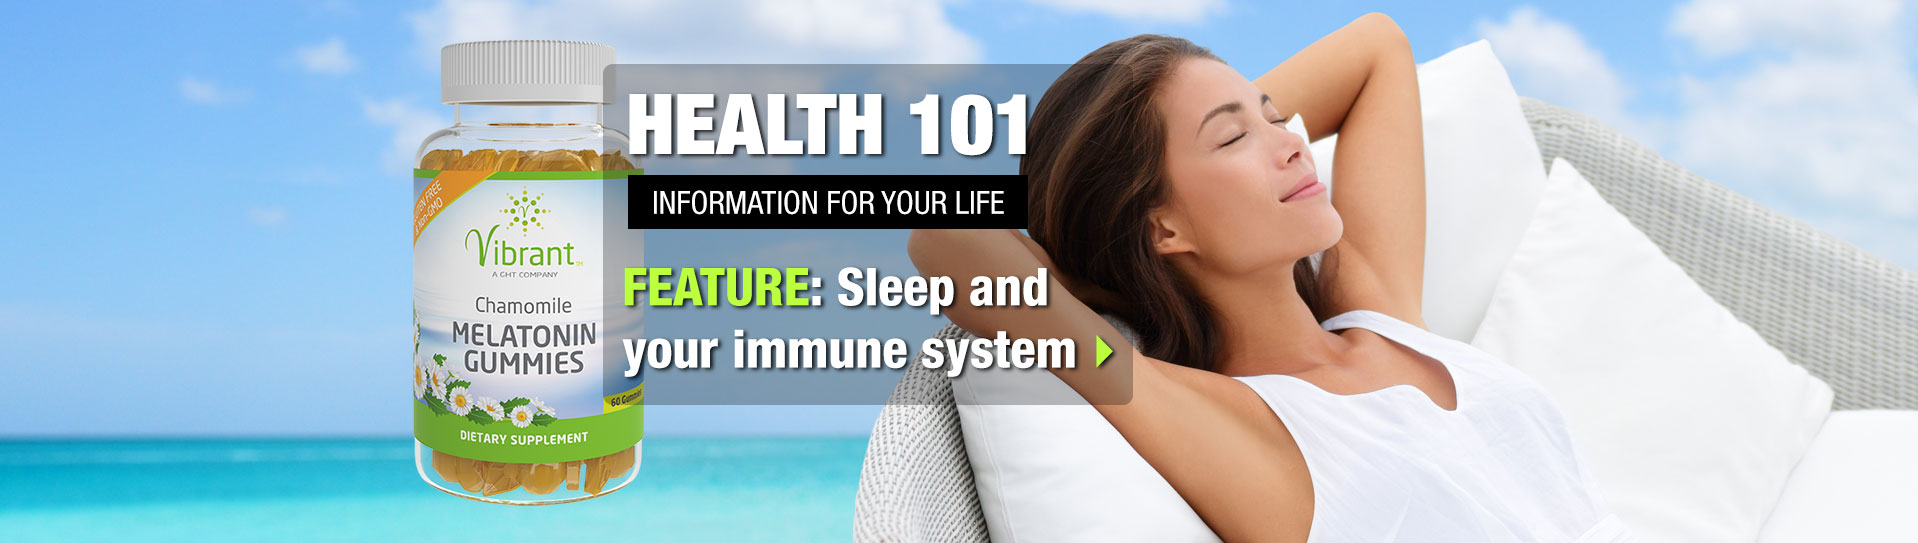 Banner about the Health 101 article on Sleep and Your Immune System; woman sleeping on beach